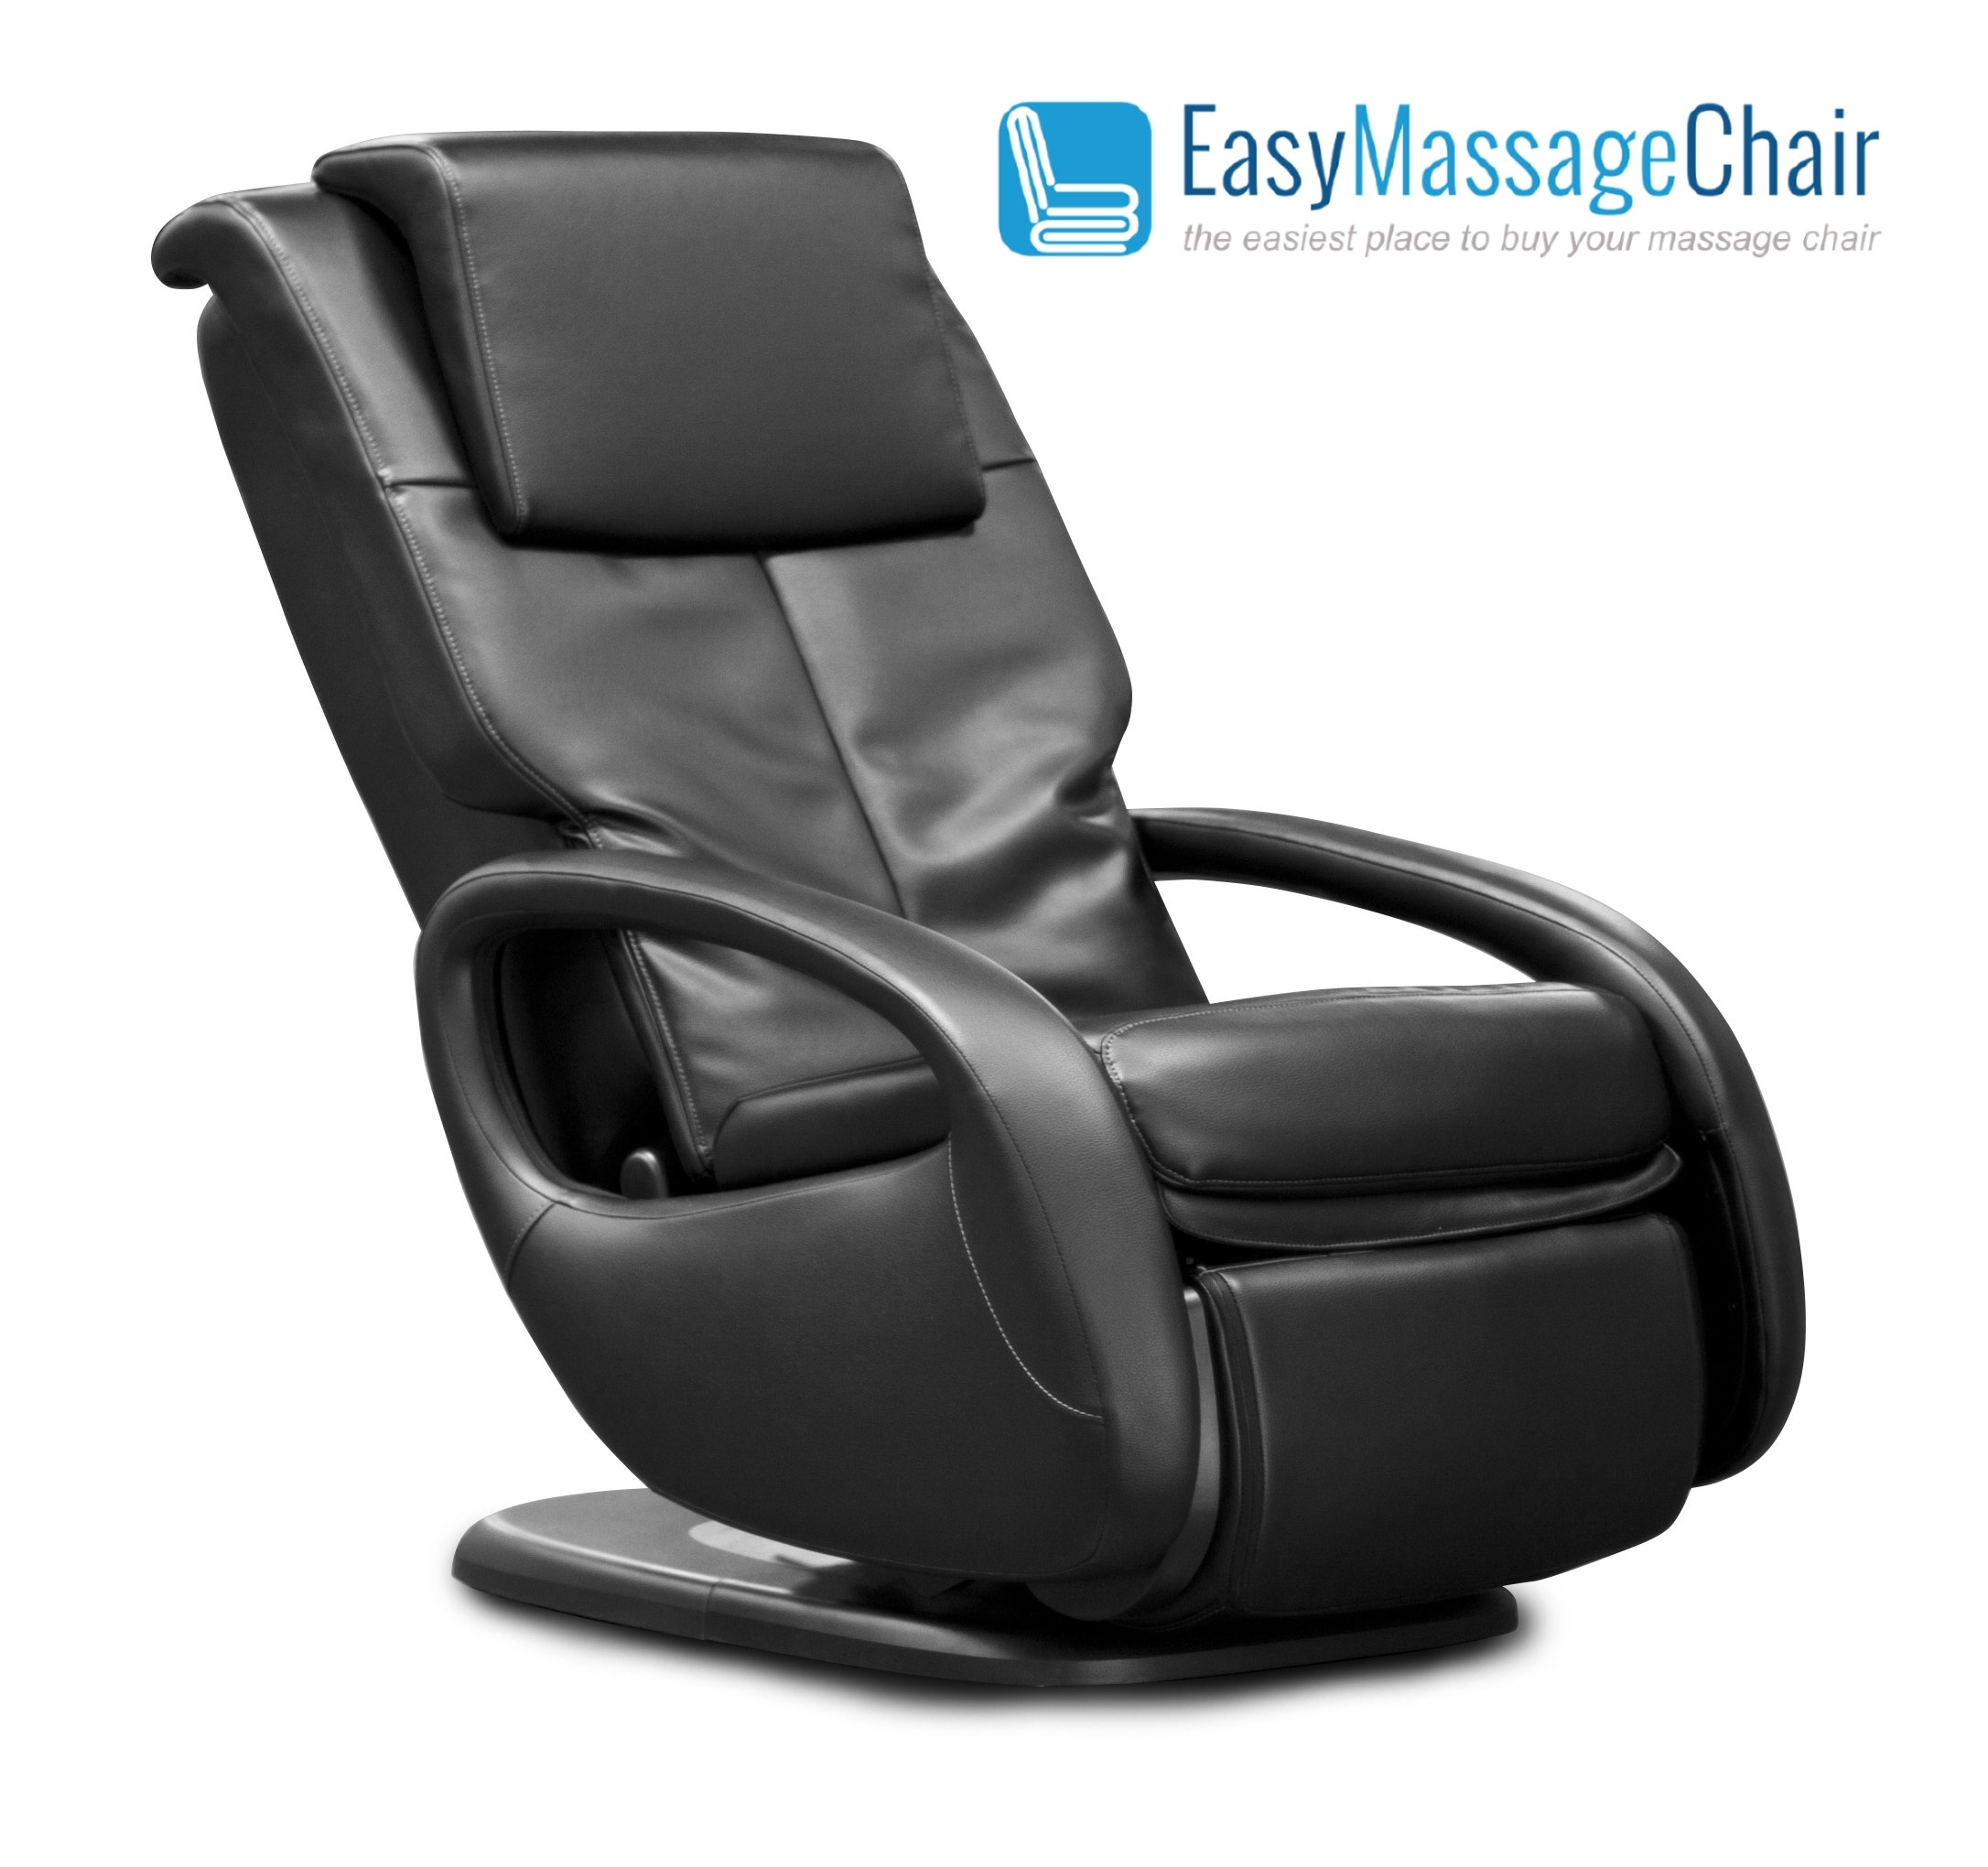 Full Body Relax and Therapy Massage Chair